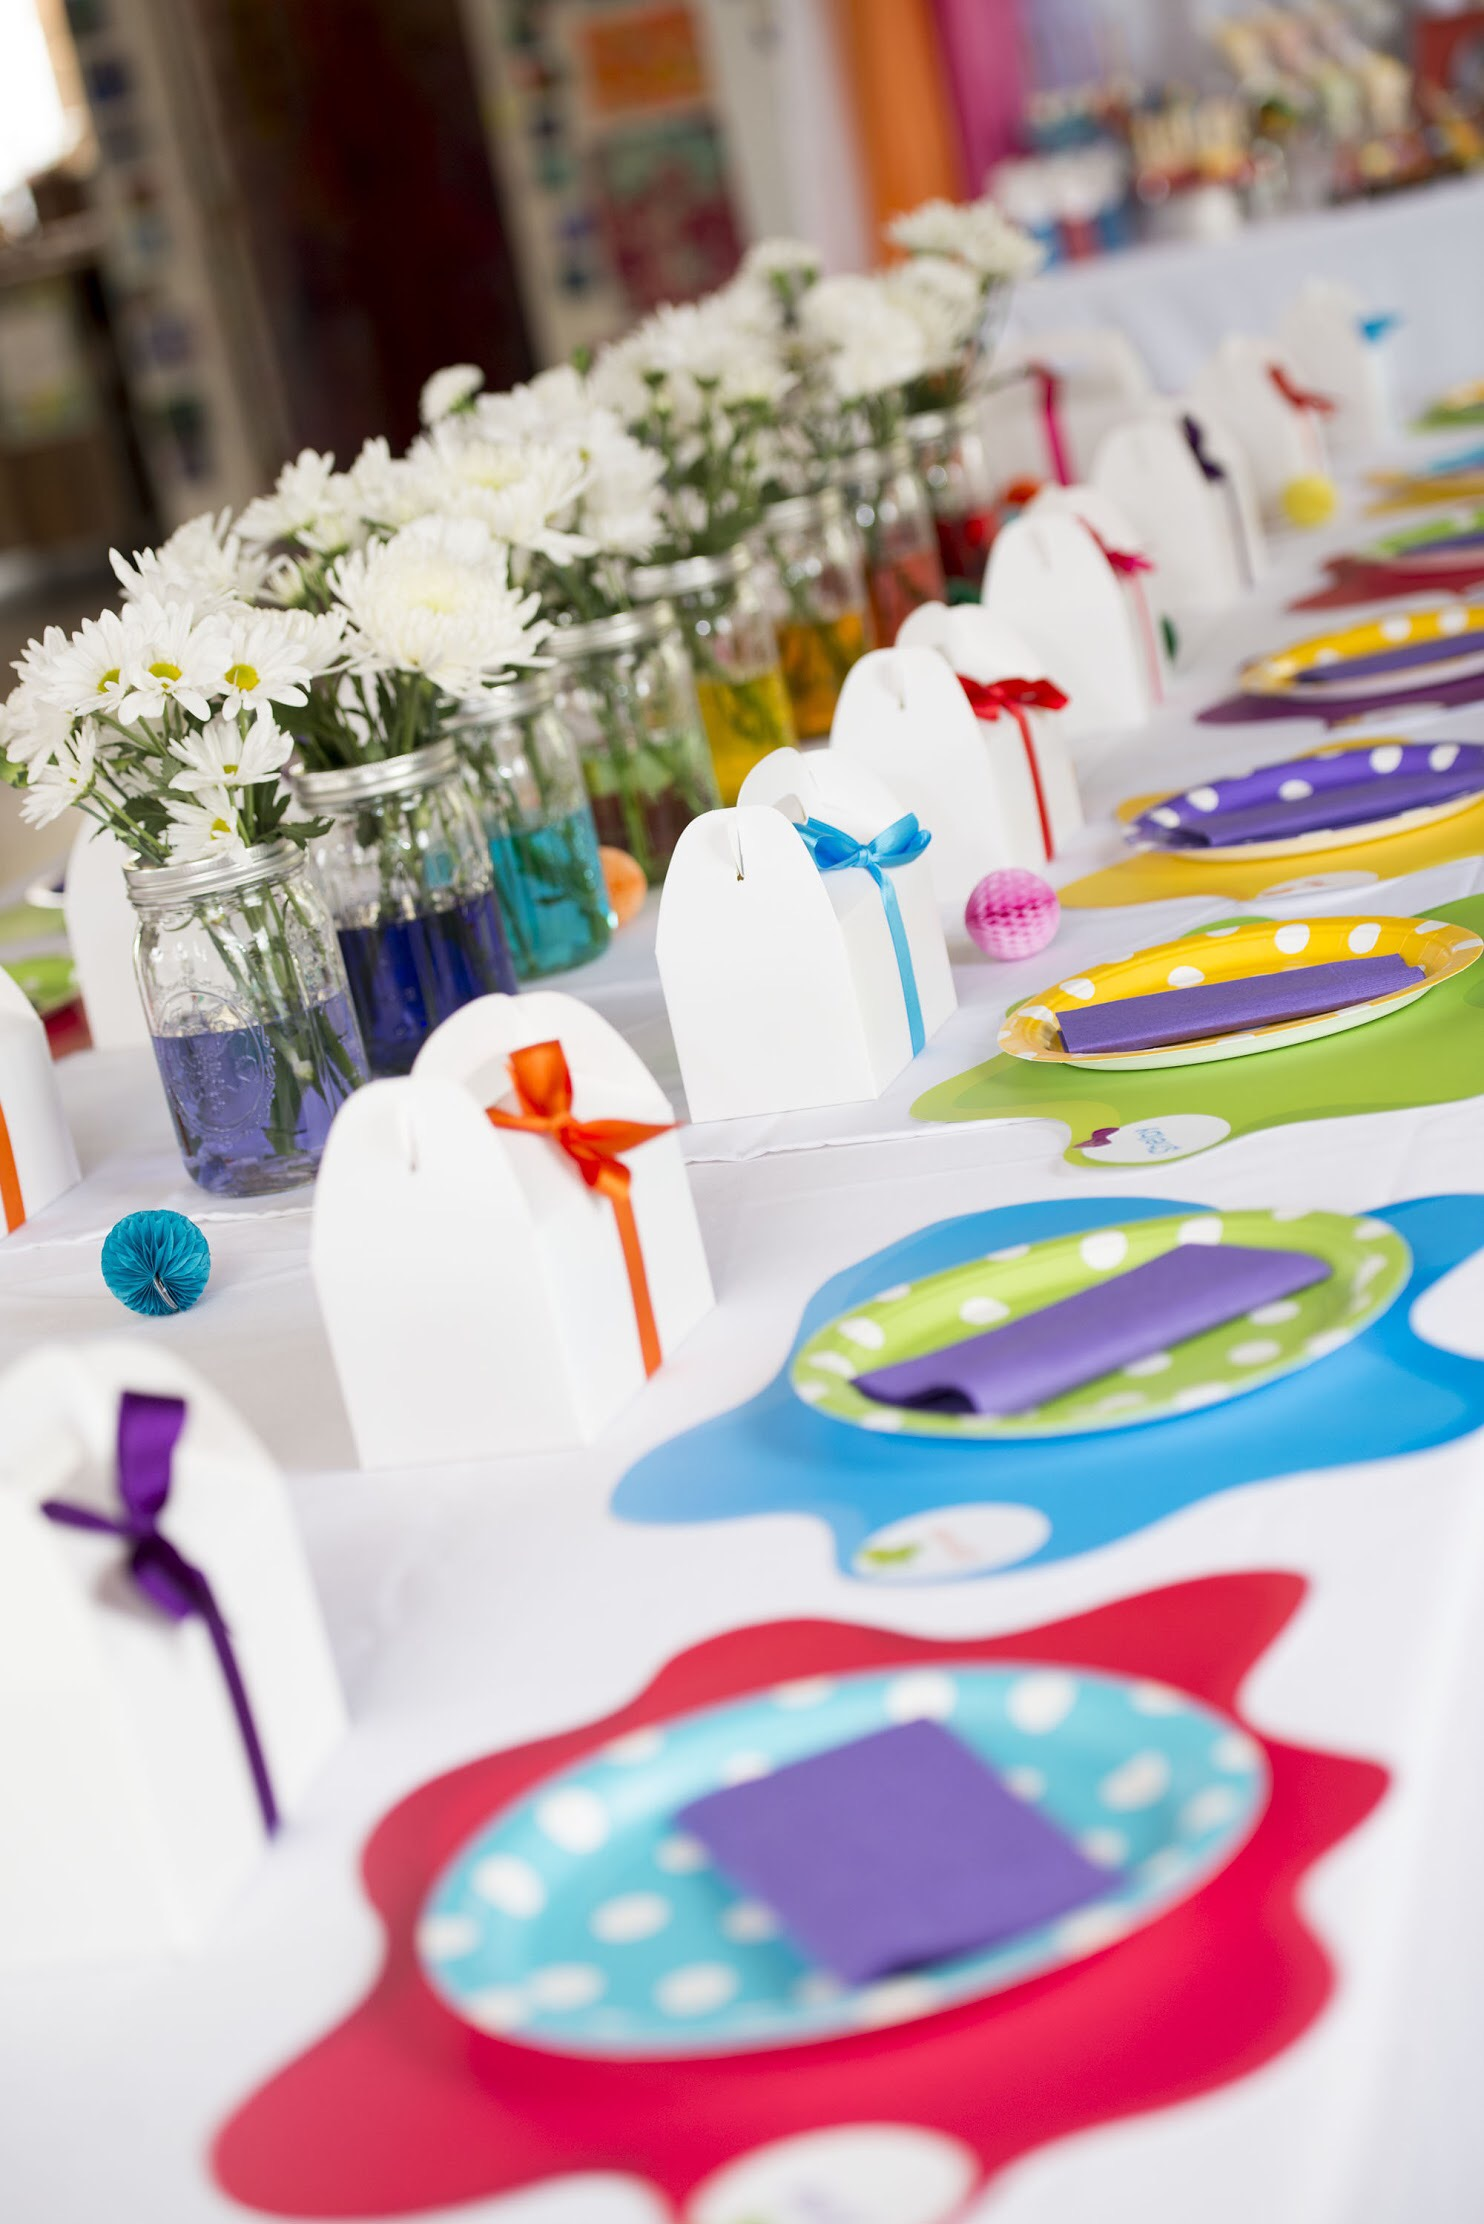 Beautifully decorated kids birthday table: white gable boxes with rainbow colored ribbons and colorful place settings along with flowers in mason jars with colored water. #kidsparty #kidspartyideas #birthdaypartyideas #artparty #rainbowparty #tablesetting